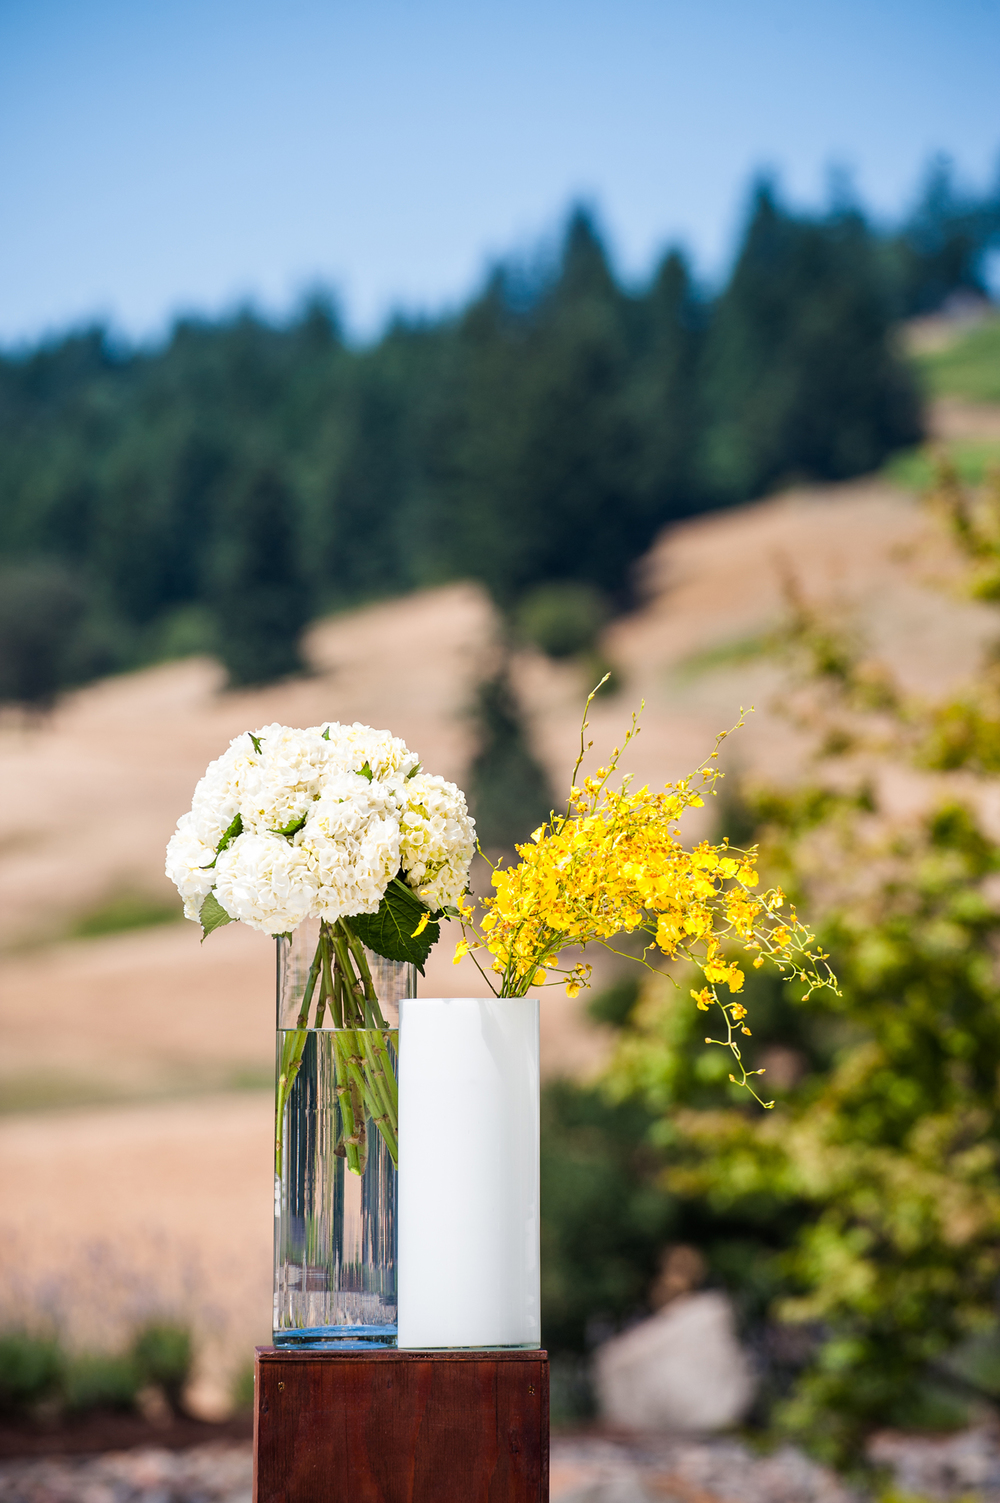 Bridalbliss.com | Portland Wedding | Oregon Event Planning and Design | Powers Studio Photography | Bella Blum Floral